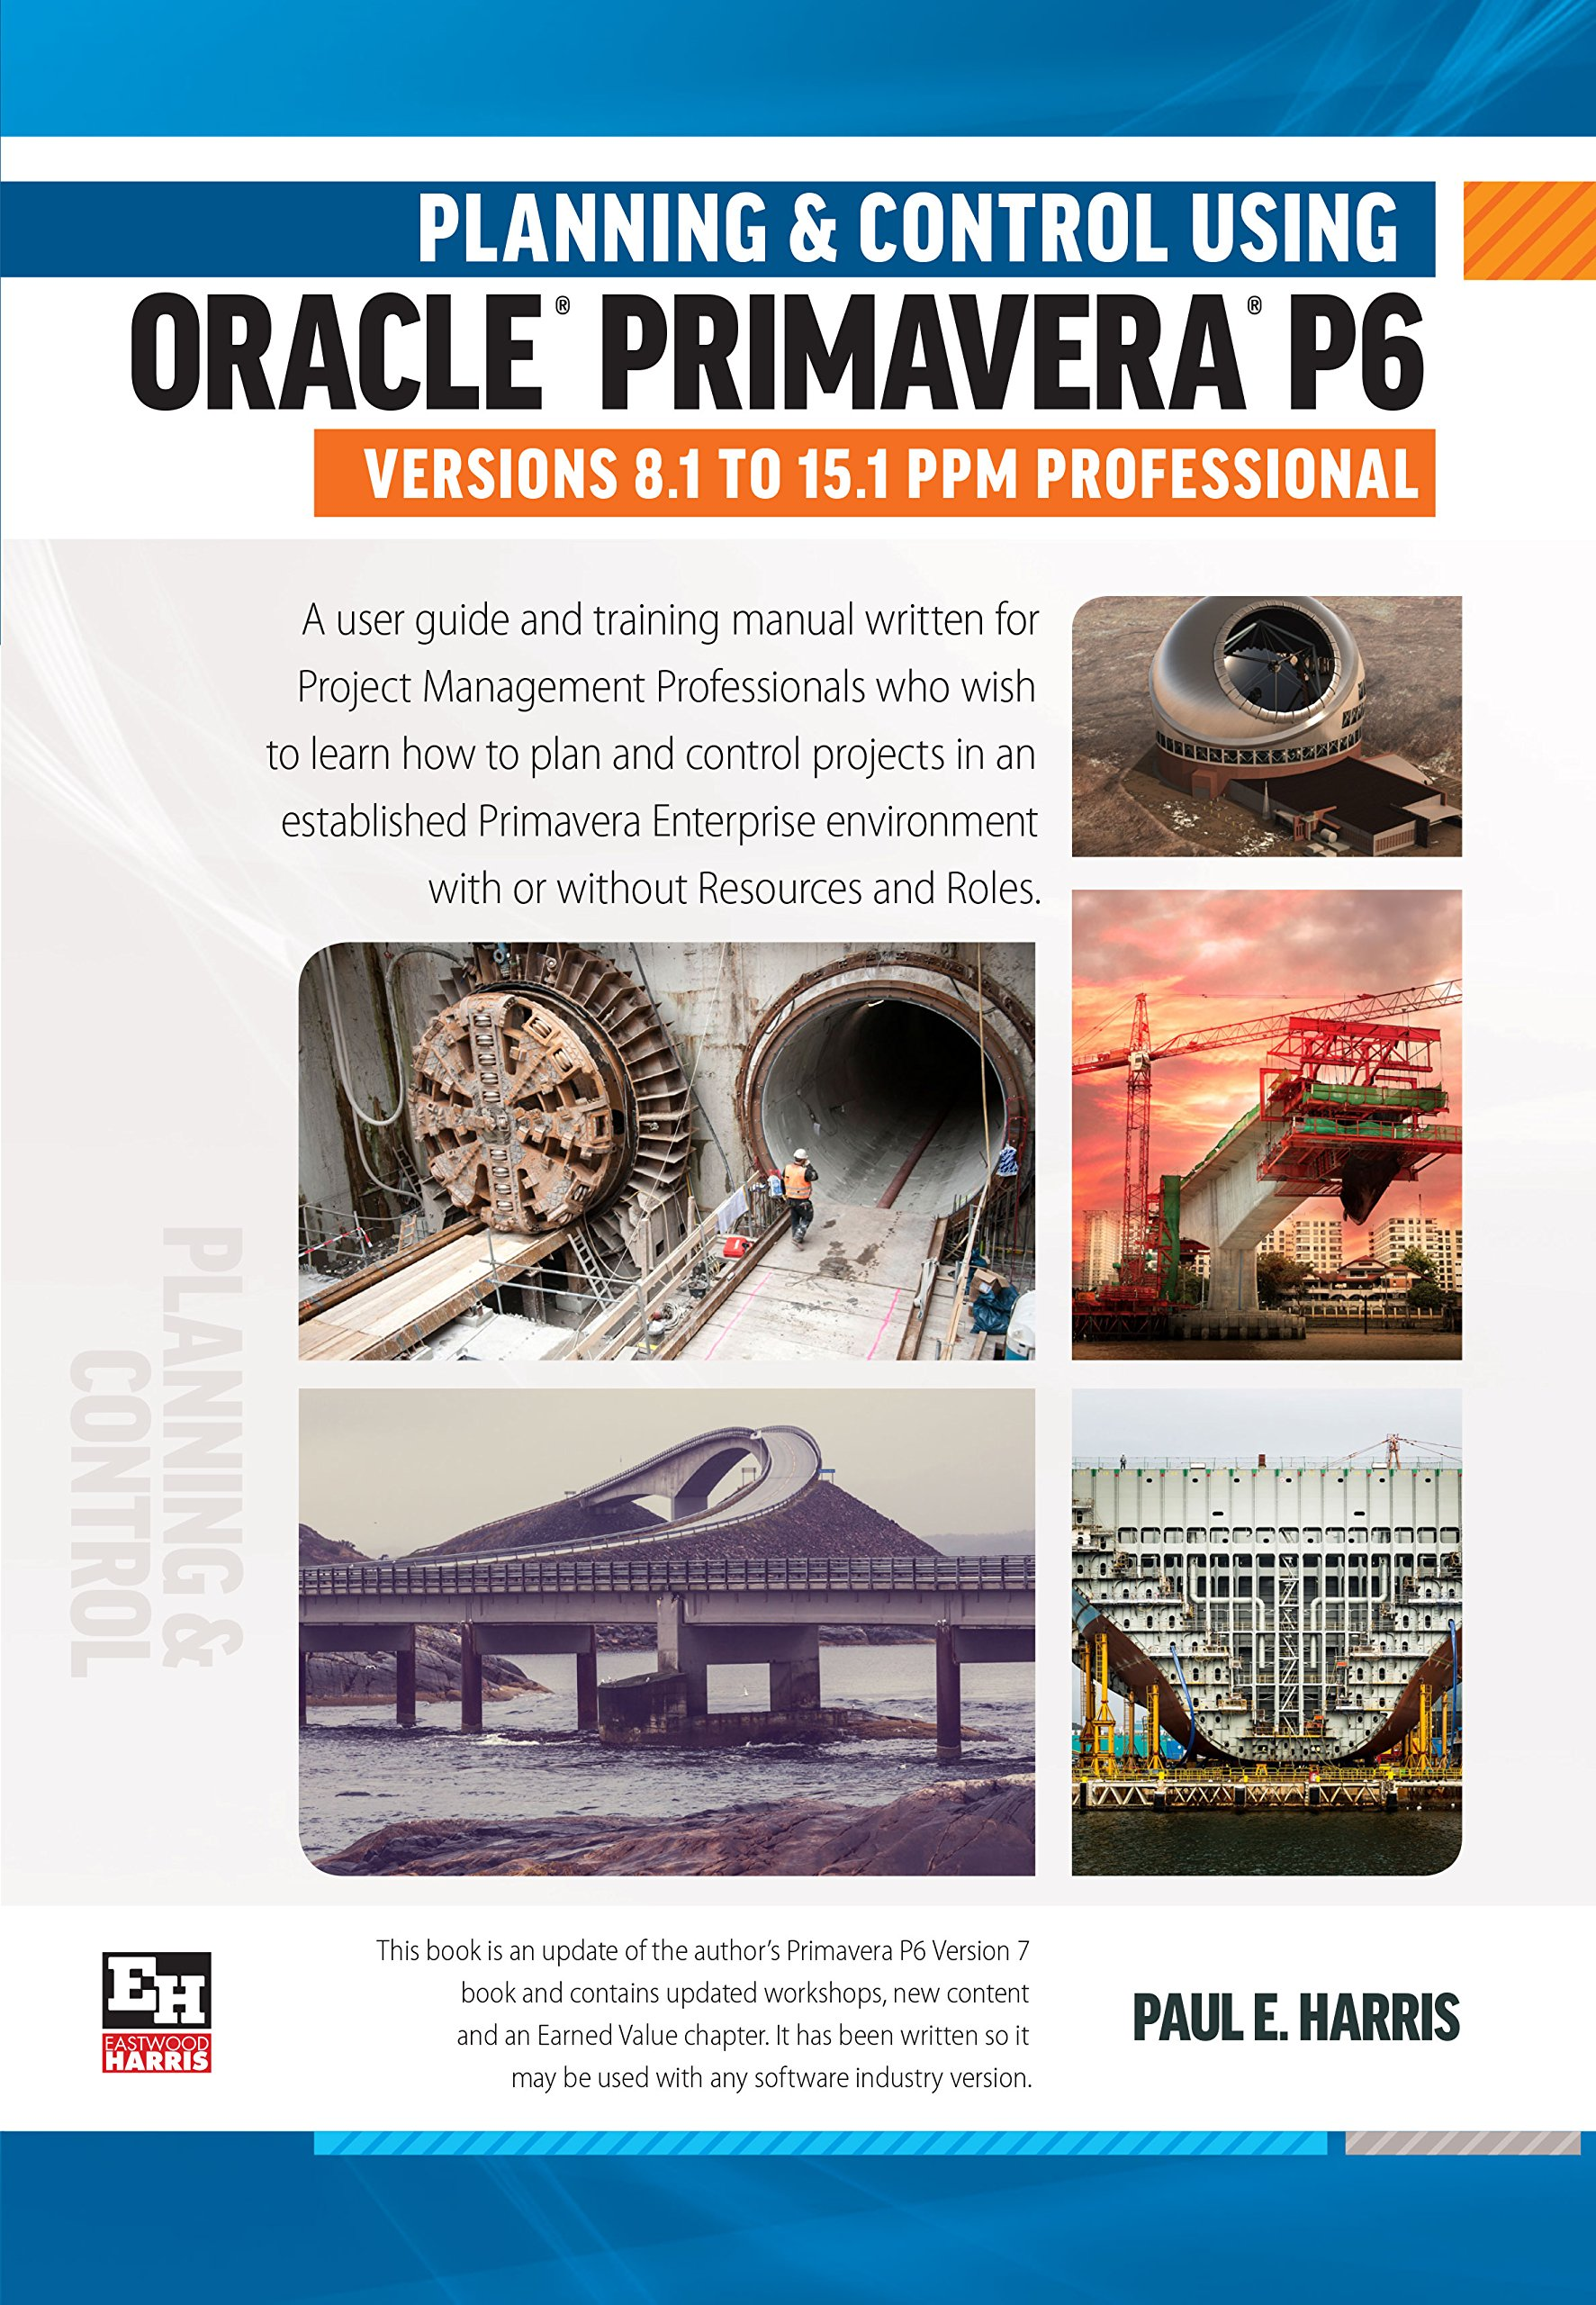 Project Planning And Control Using Oracle Primavera P6 Pdf